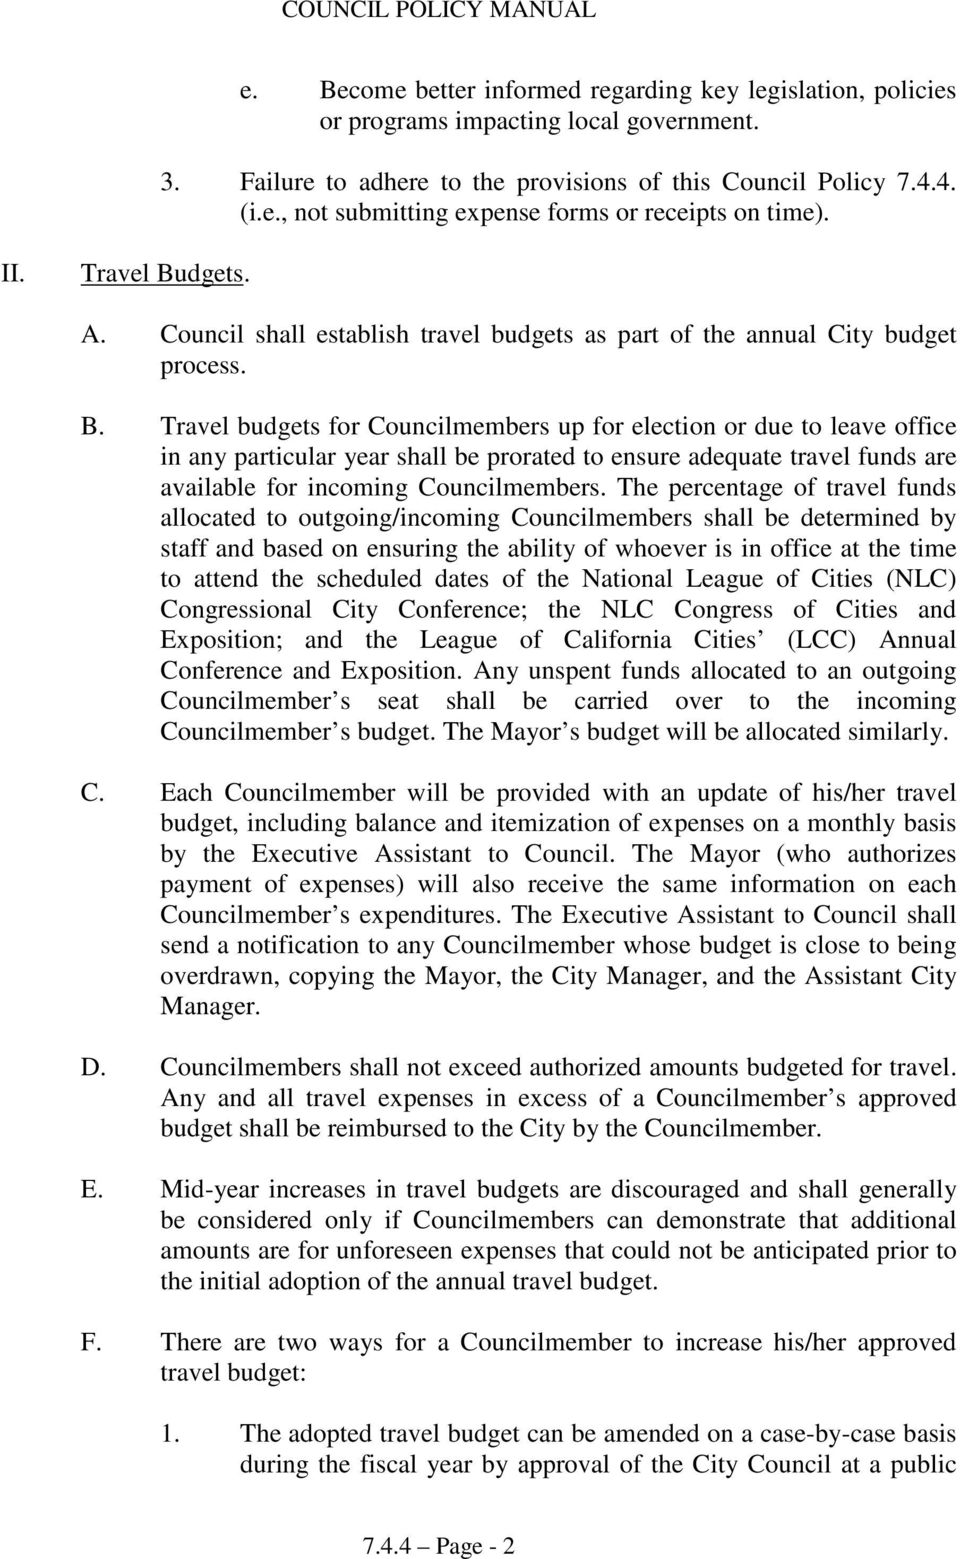 dgets. A. Council shall establish travel budgets as part of the annual City budget process. B.